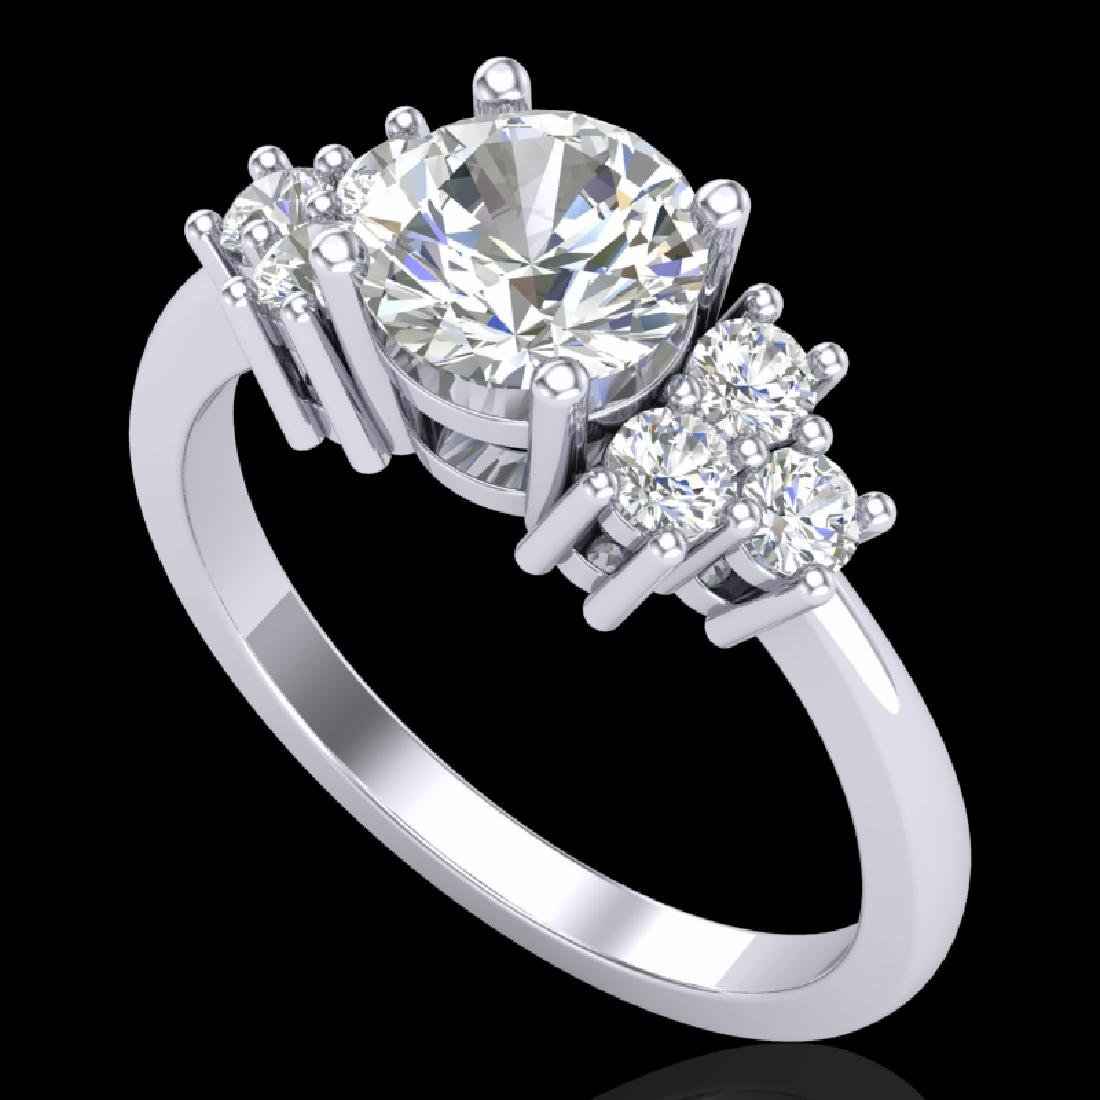 1.5 CTW VS/SI Diamond Solitaire Ring 18K White Gold